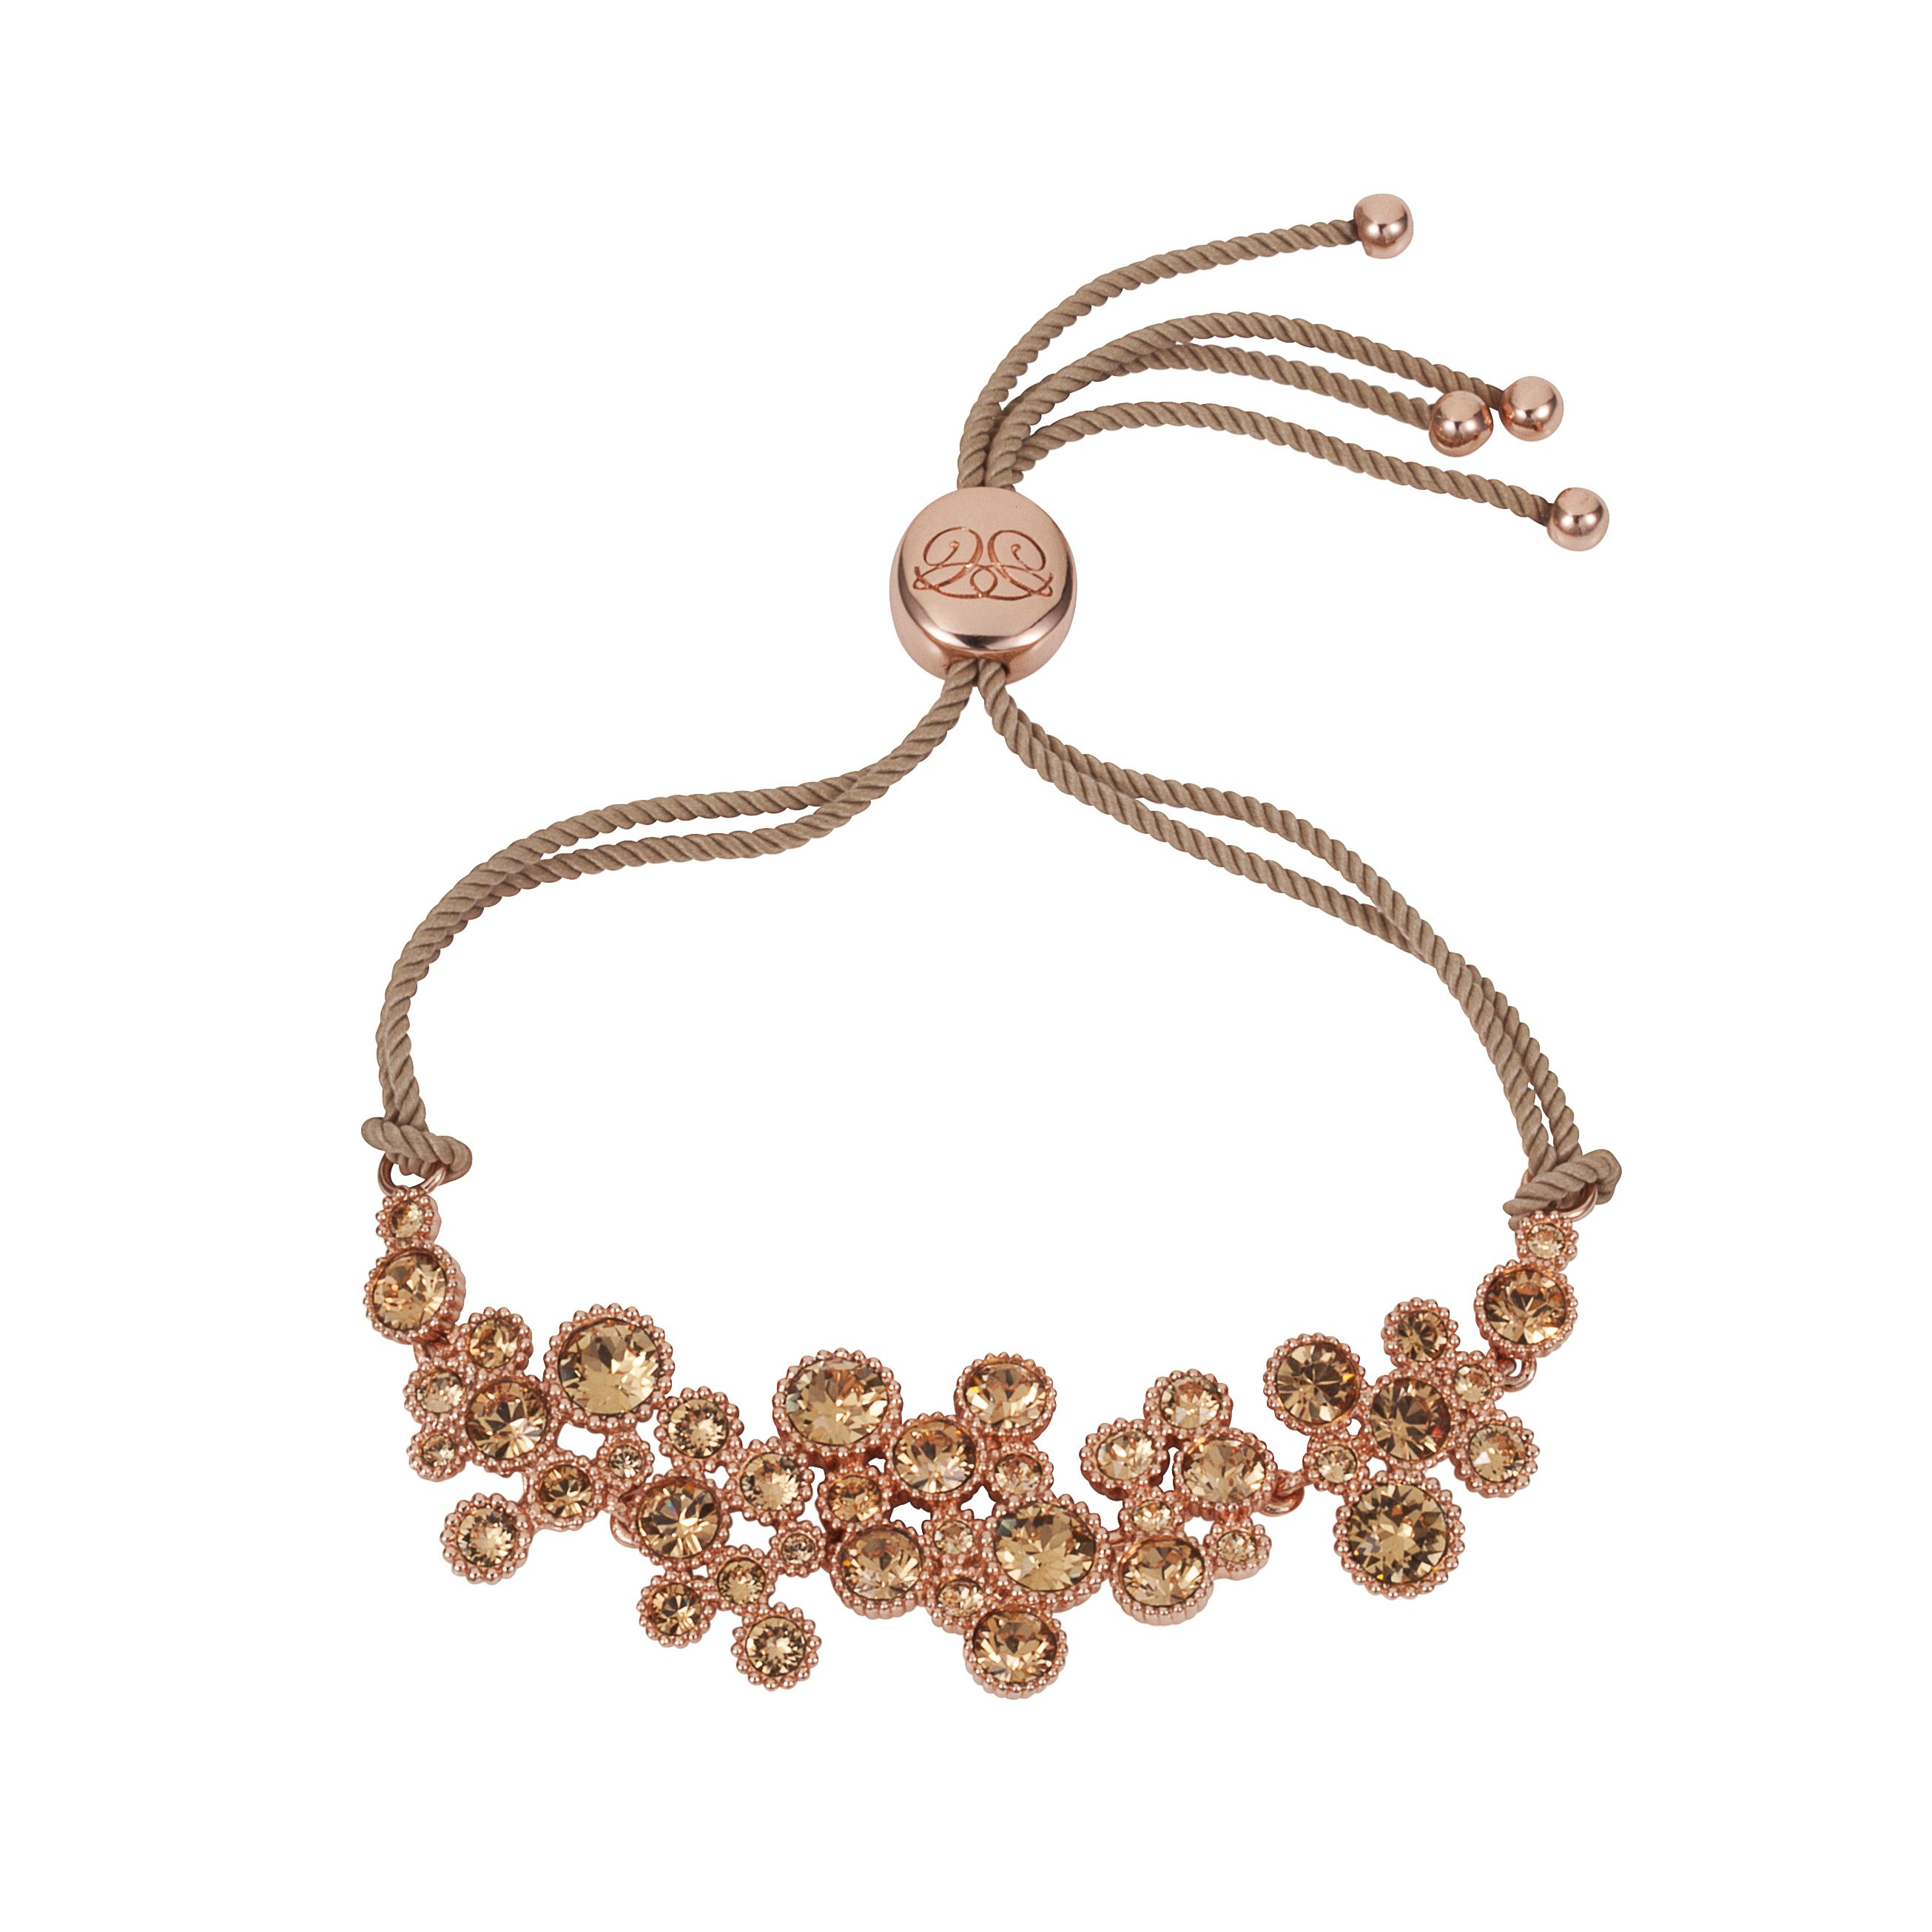 18ct rose gold plated titania friendship bracelet